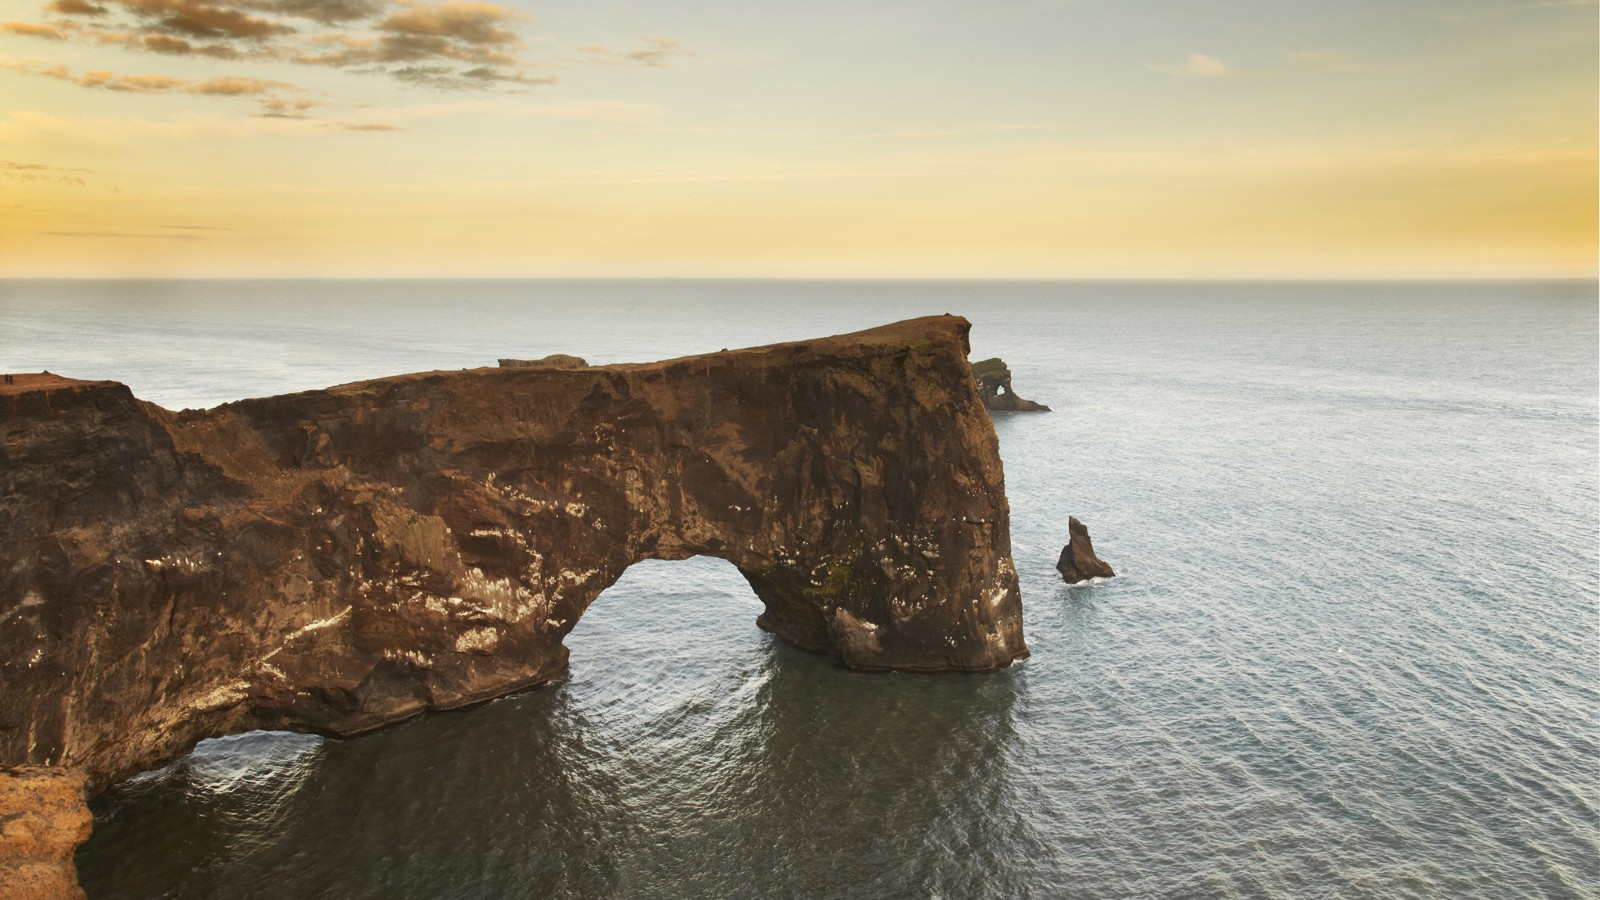 The cliffs of Dyrholaey Island, near Vik, Iceland